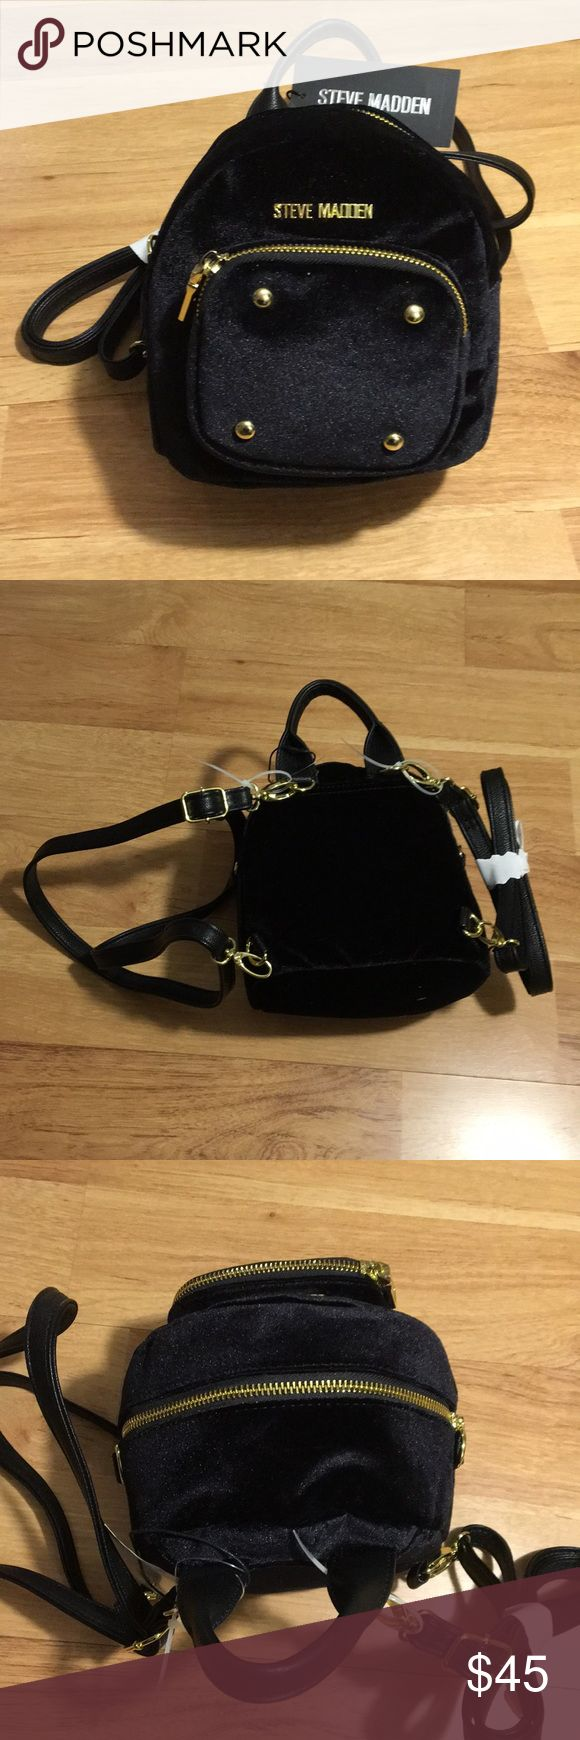 Brand New with tags Steve Madden mini backpack✨ Brand New with tags Steve Madden mini backpack✨ Adorable black velvet and gold backpack. Perfect condition. Adjustable straps!! Steve Madden Bags Mini Bags